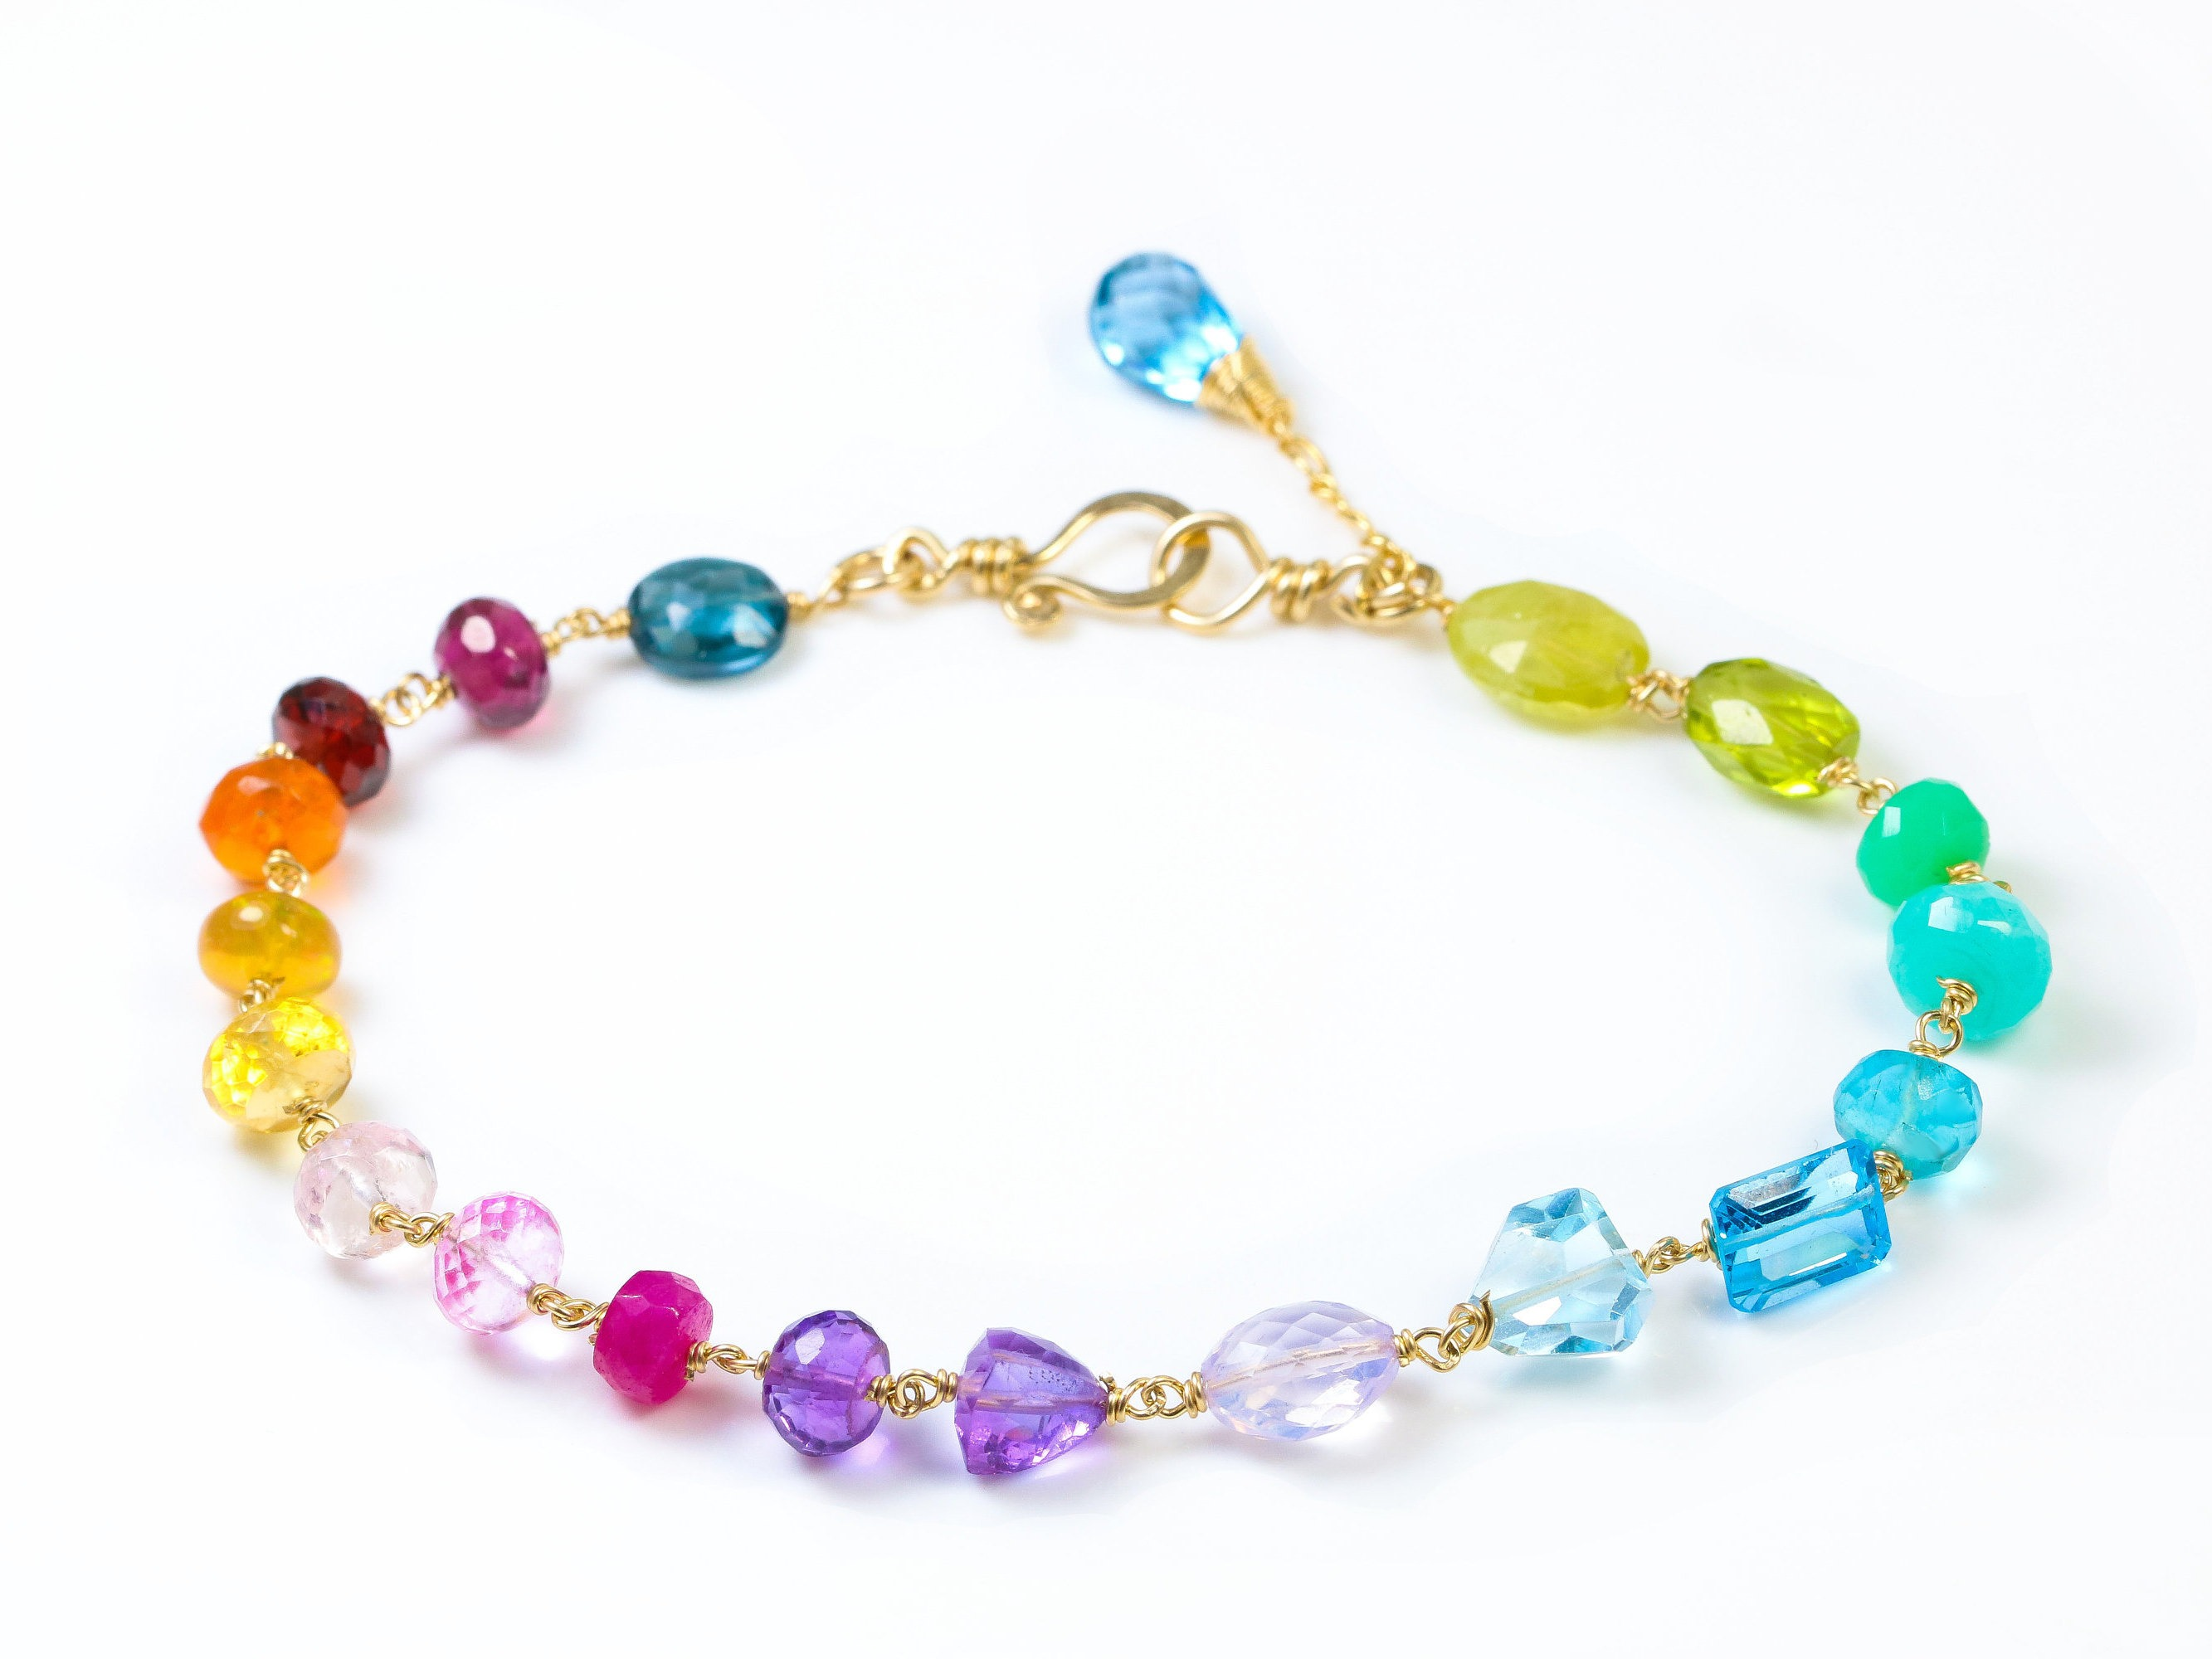 Rainbow Precious Gemstone Bracelet Wire Wrapped in Gold Filled ...